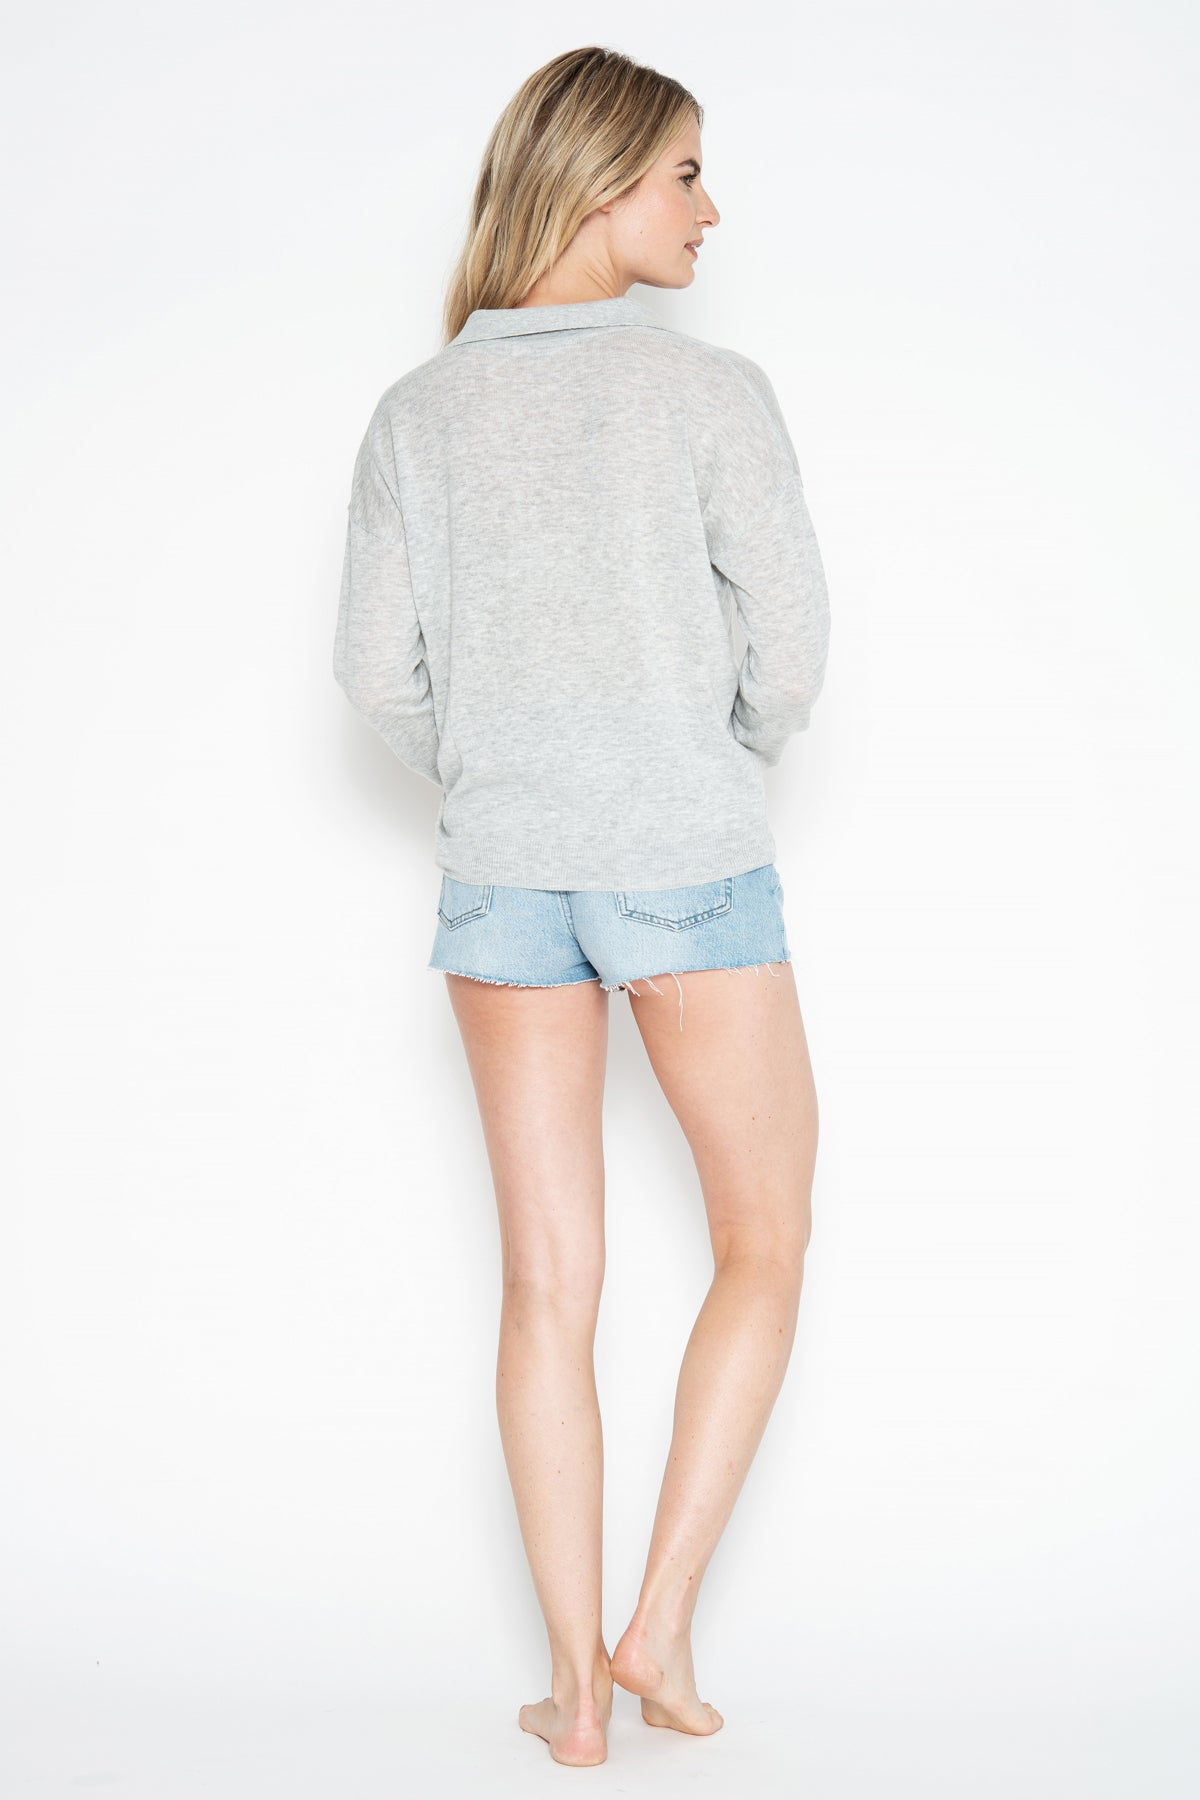 Aerin L/S Pullover - Silver Shadow